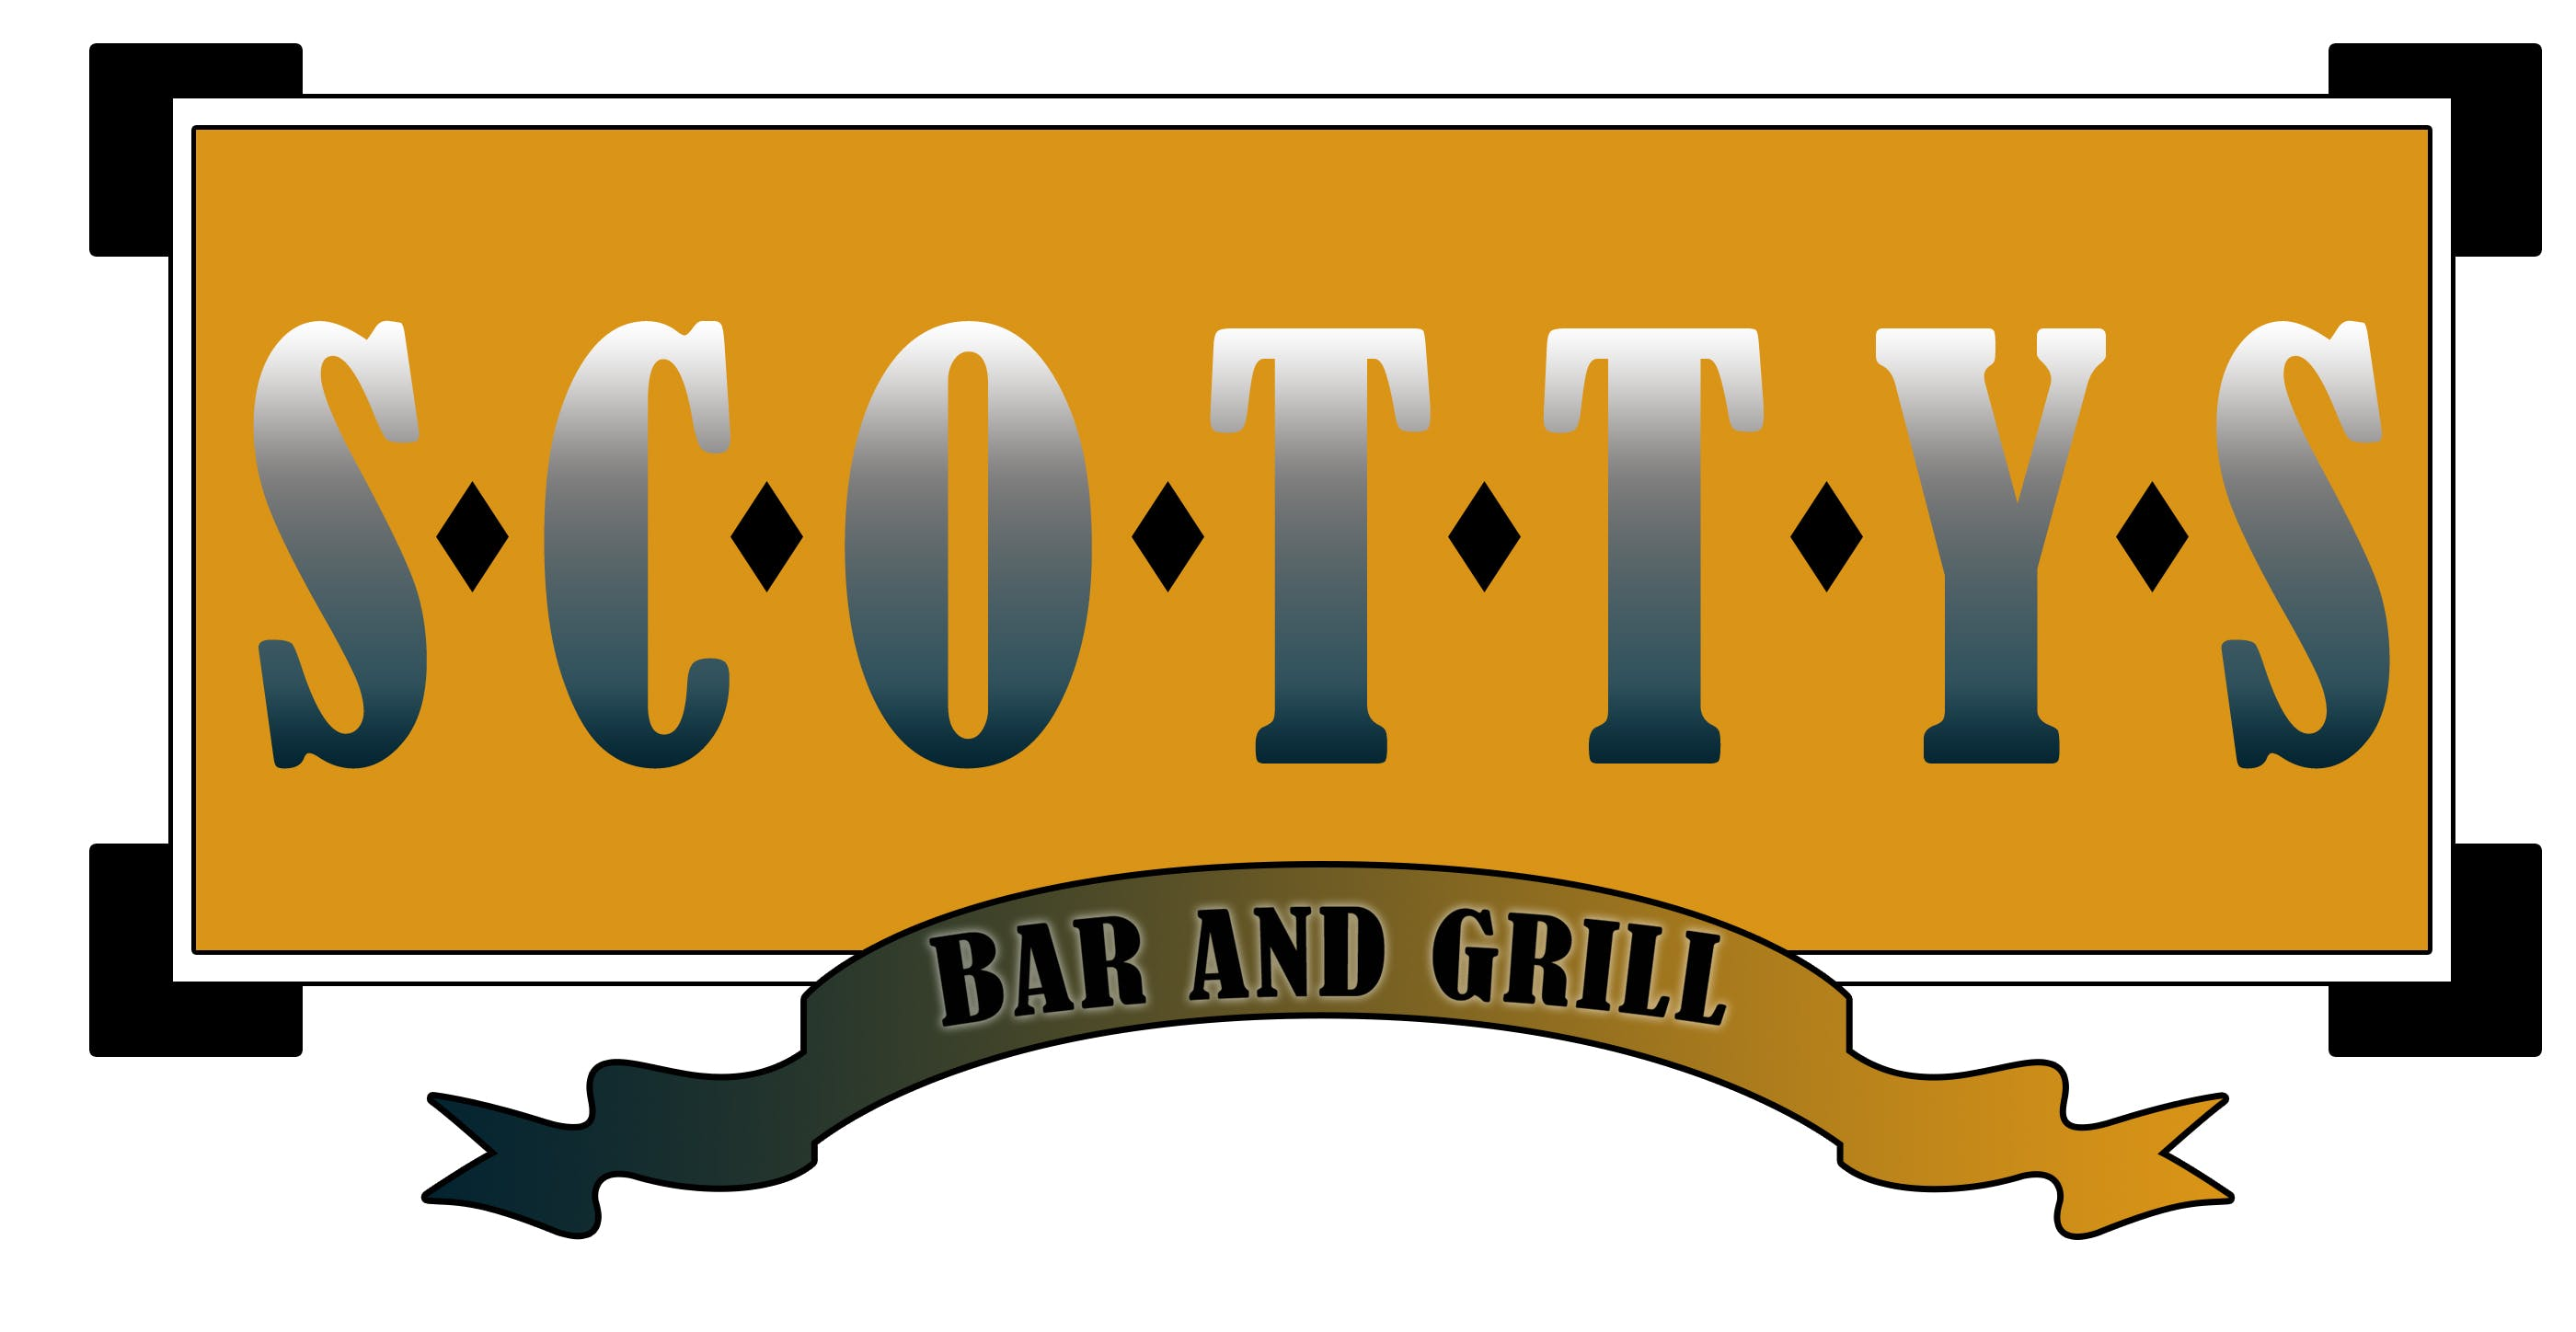 Scotty's Bar and Grill Logo